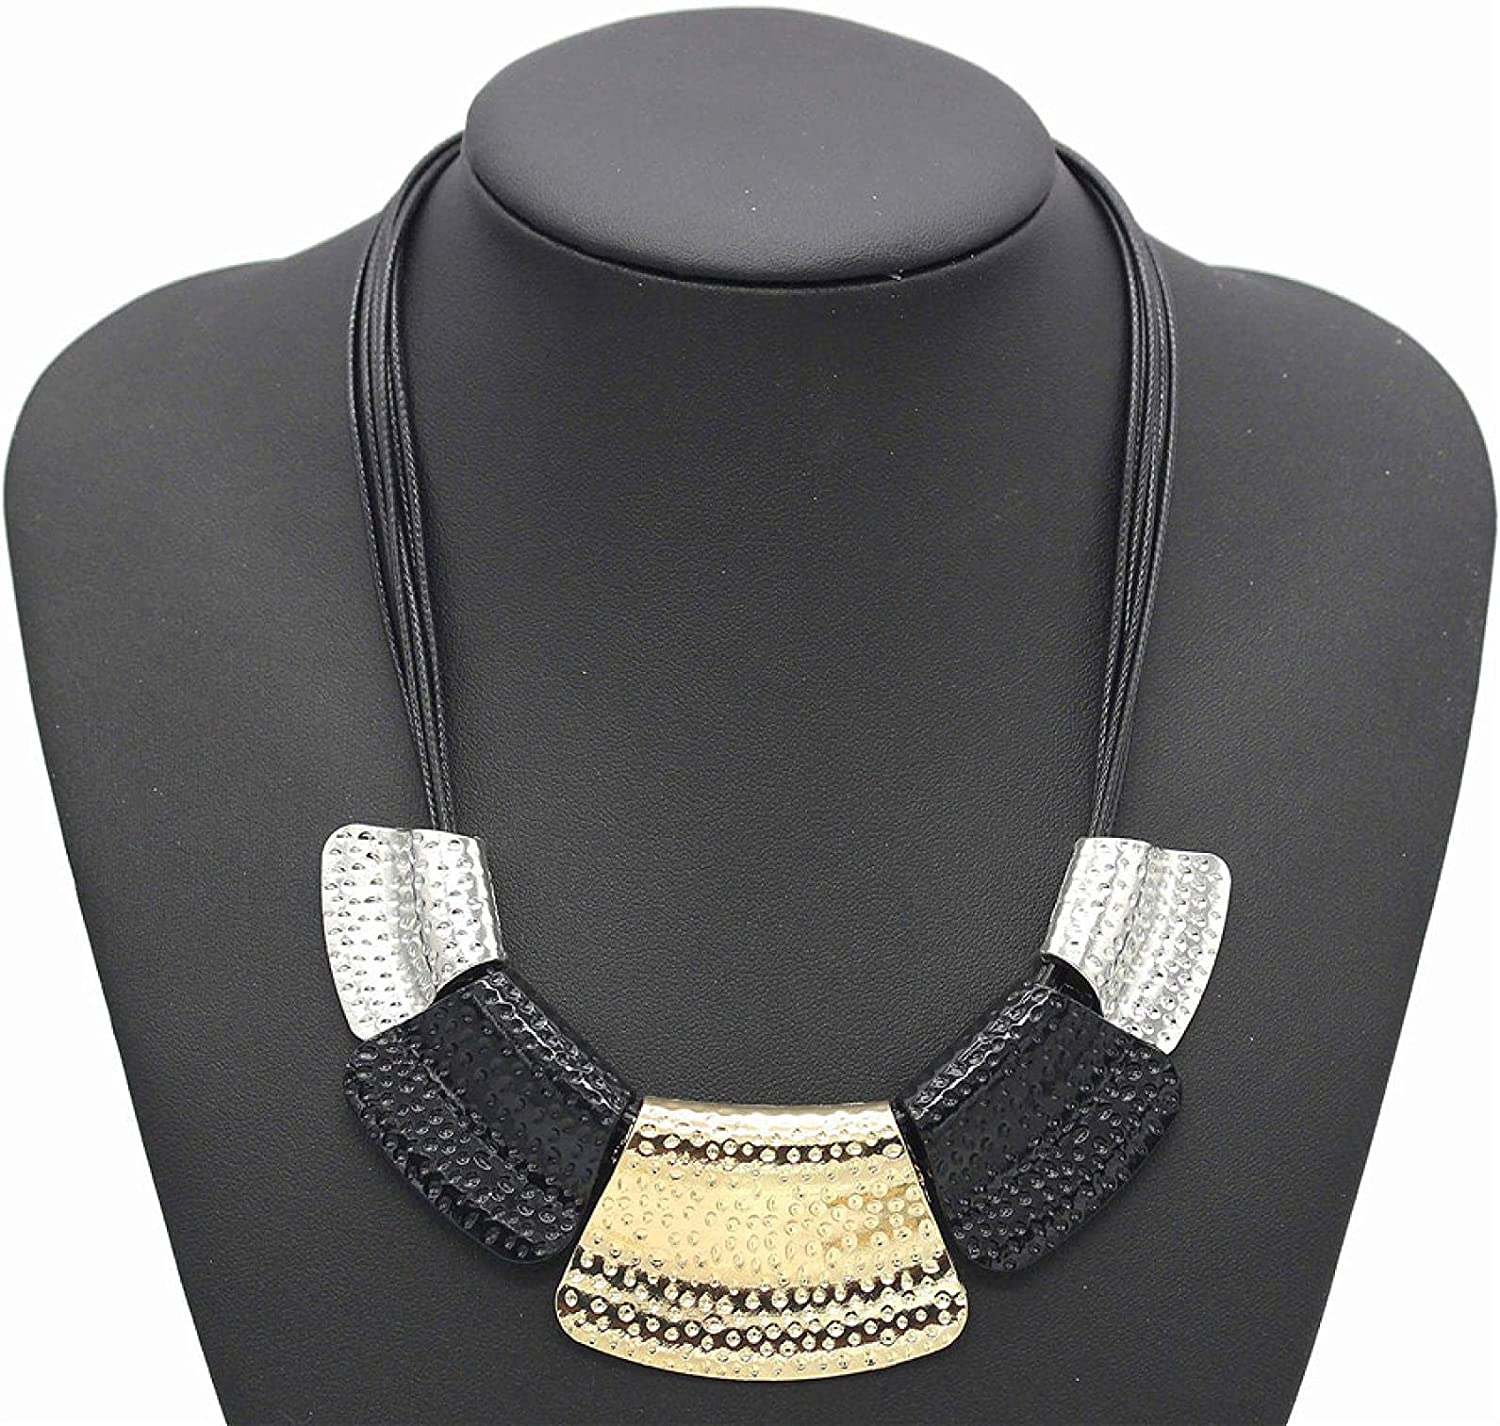 Usful Jewelry Decoration Personality Gold Wax Rope Short Necklace False Collar Accessories Multi-Layer